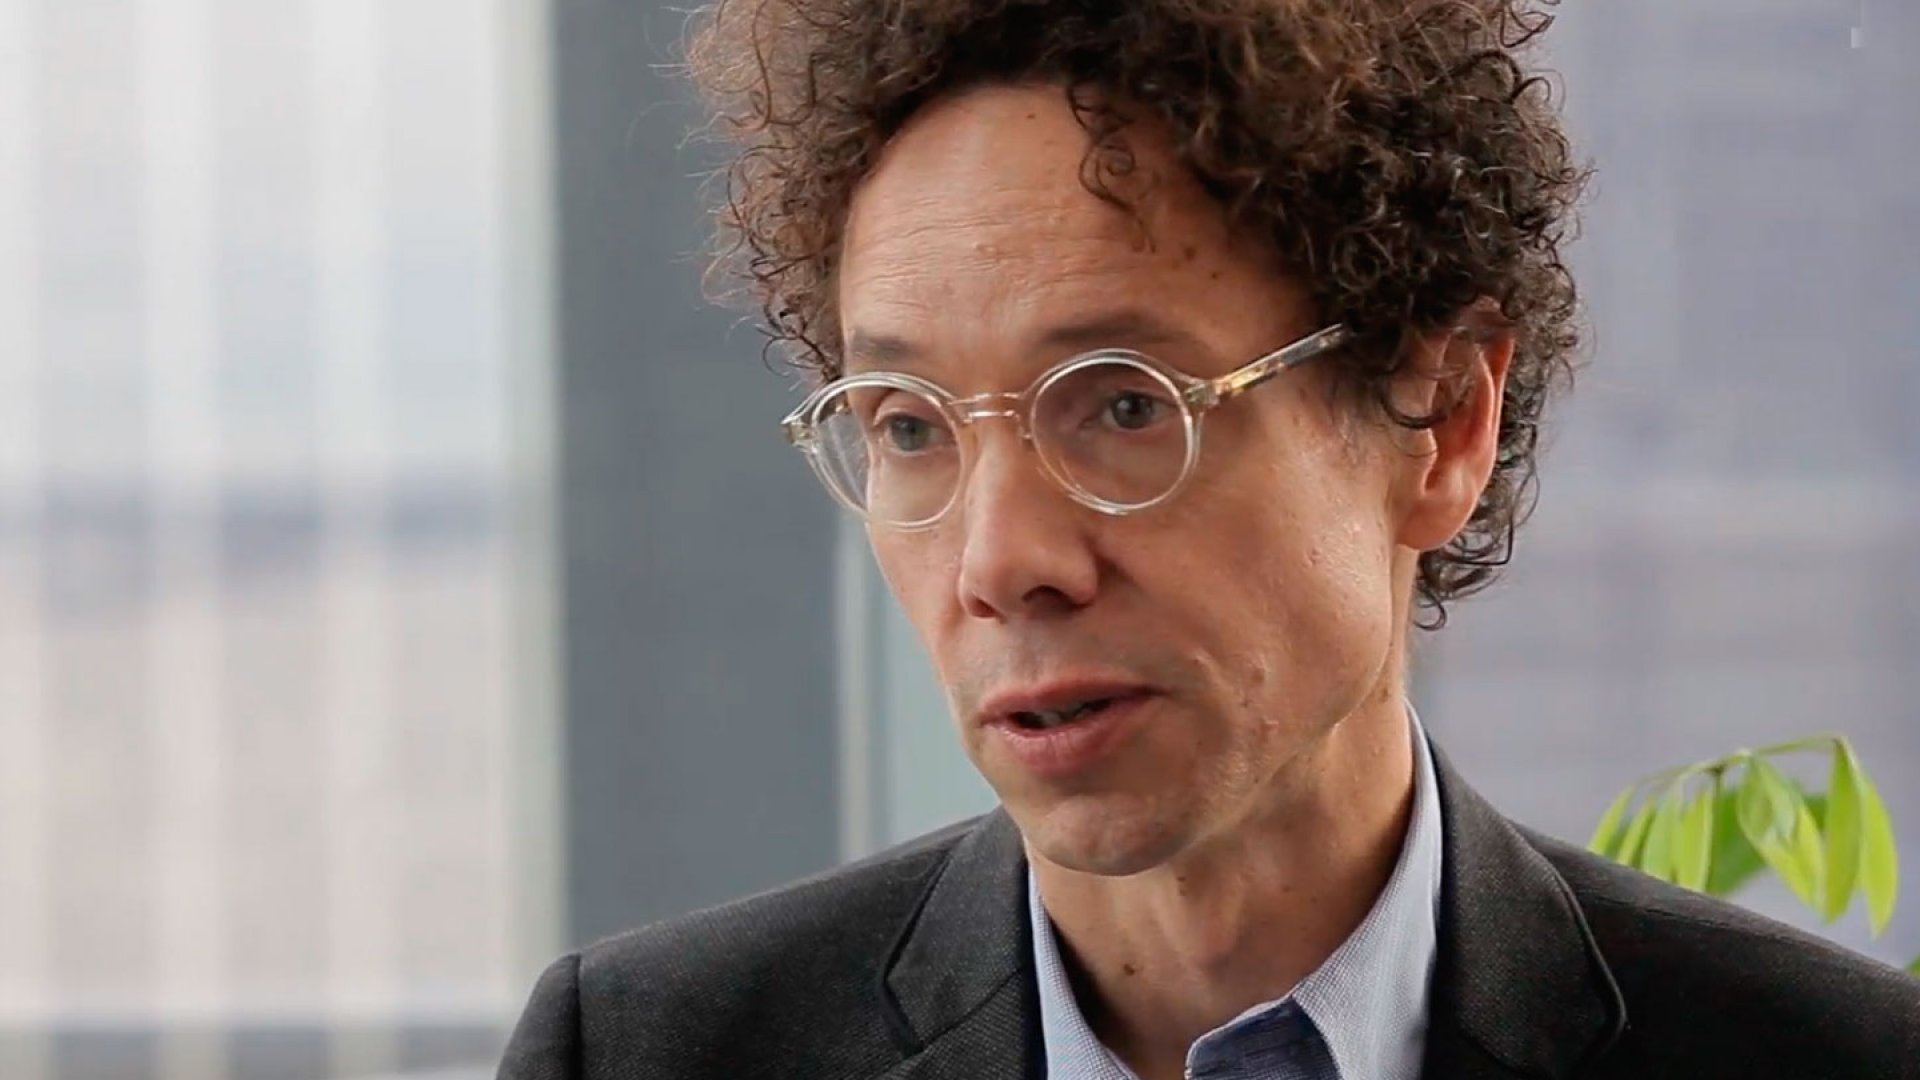 Malcolm Gladwell on Why You Need Adversity to Succeed